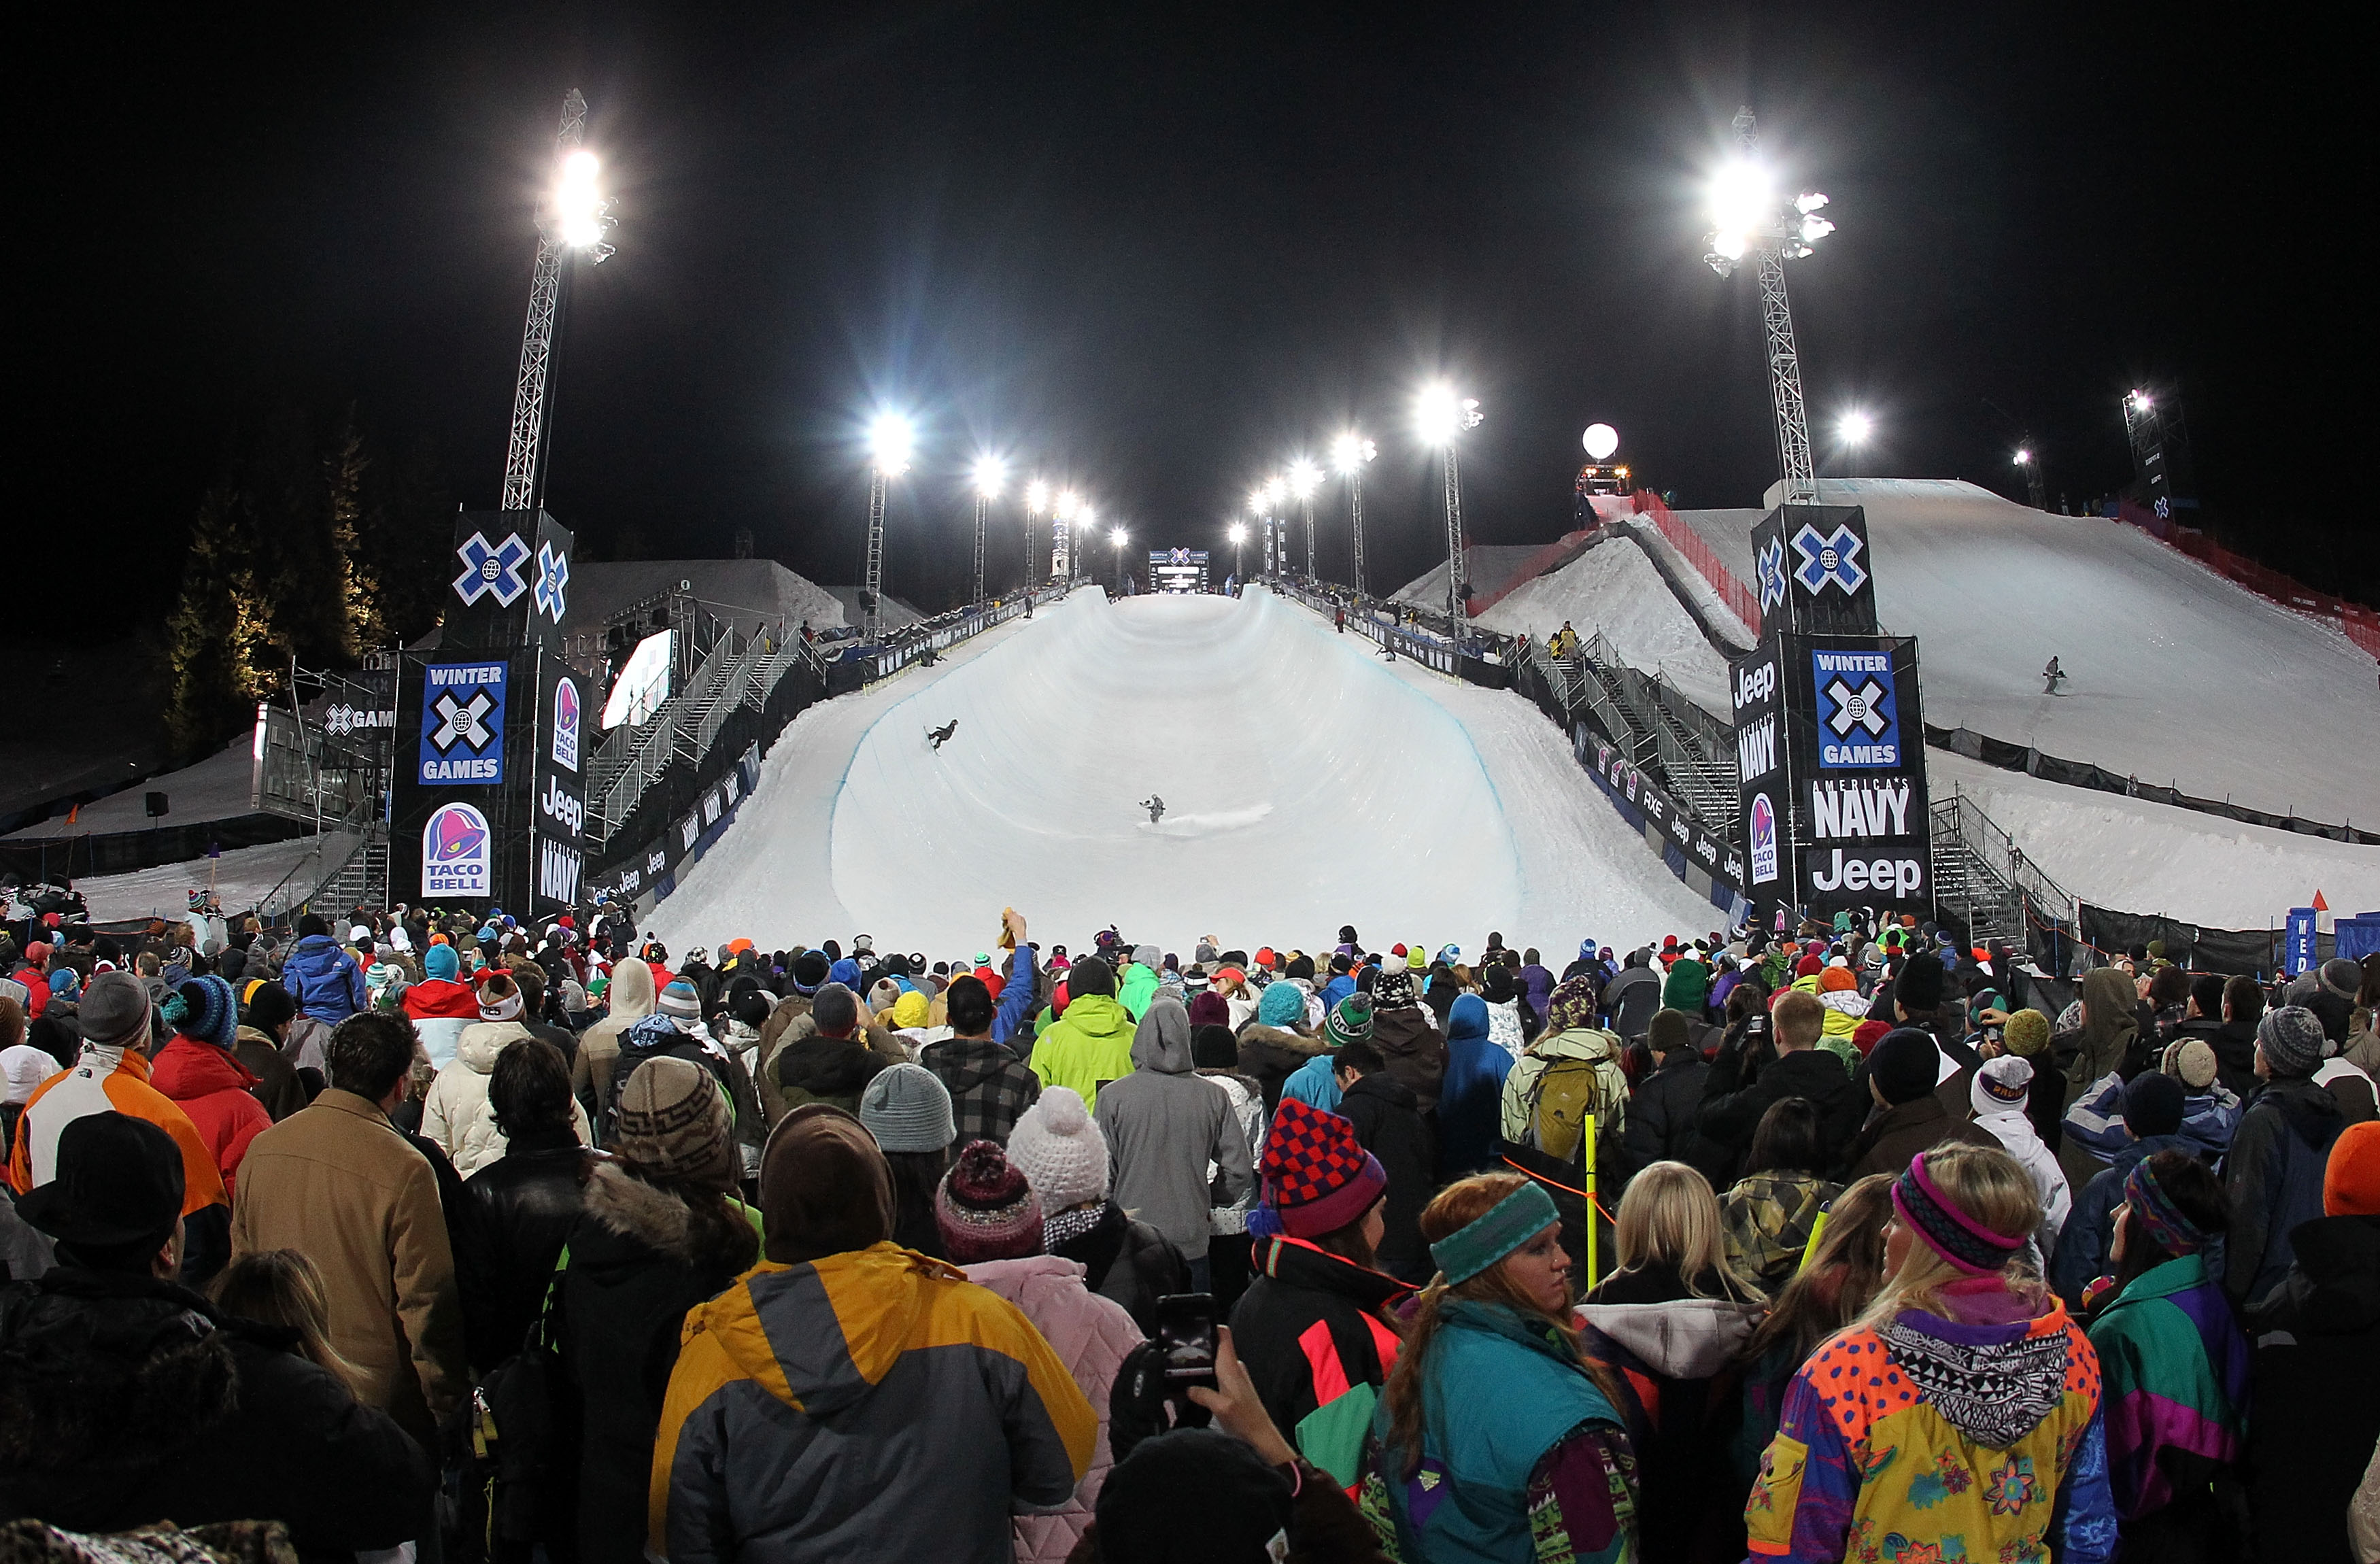 ASPEN, CO - JANUARY 28:  Spectators gather at the bottom of the halfpipe for Men's Snowboard Superpipe Eliminations at Winter X Games 14 at Buttermilk Mountain on January 28, 2010 in Aspen, Colorado.  (Photo by Doug Pensinger/Getty Images)